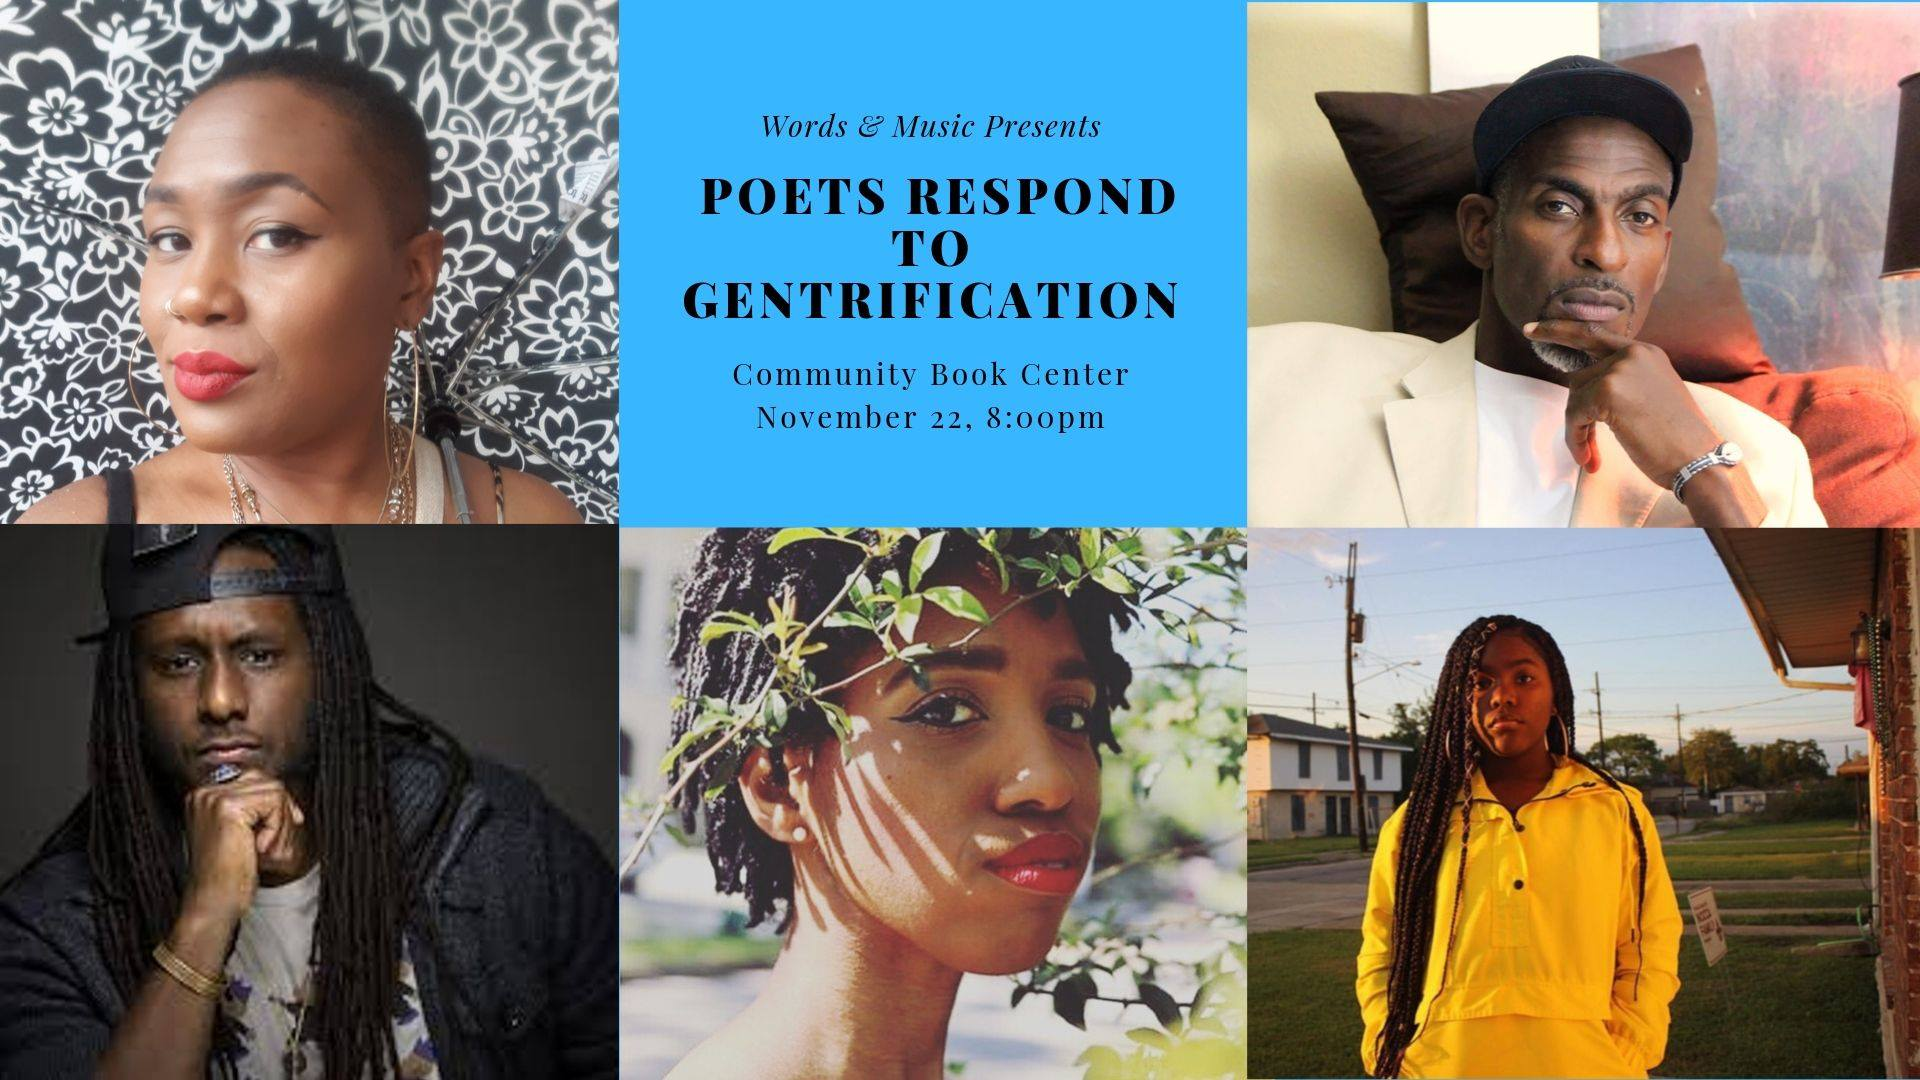 Poets Respond to Gentrification flyer